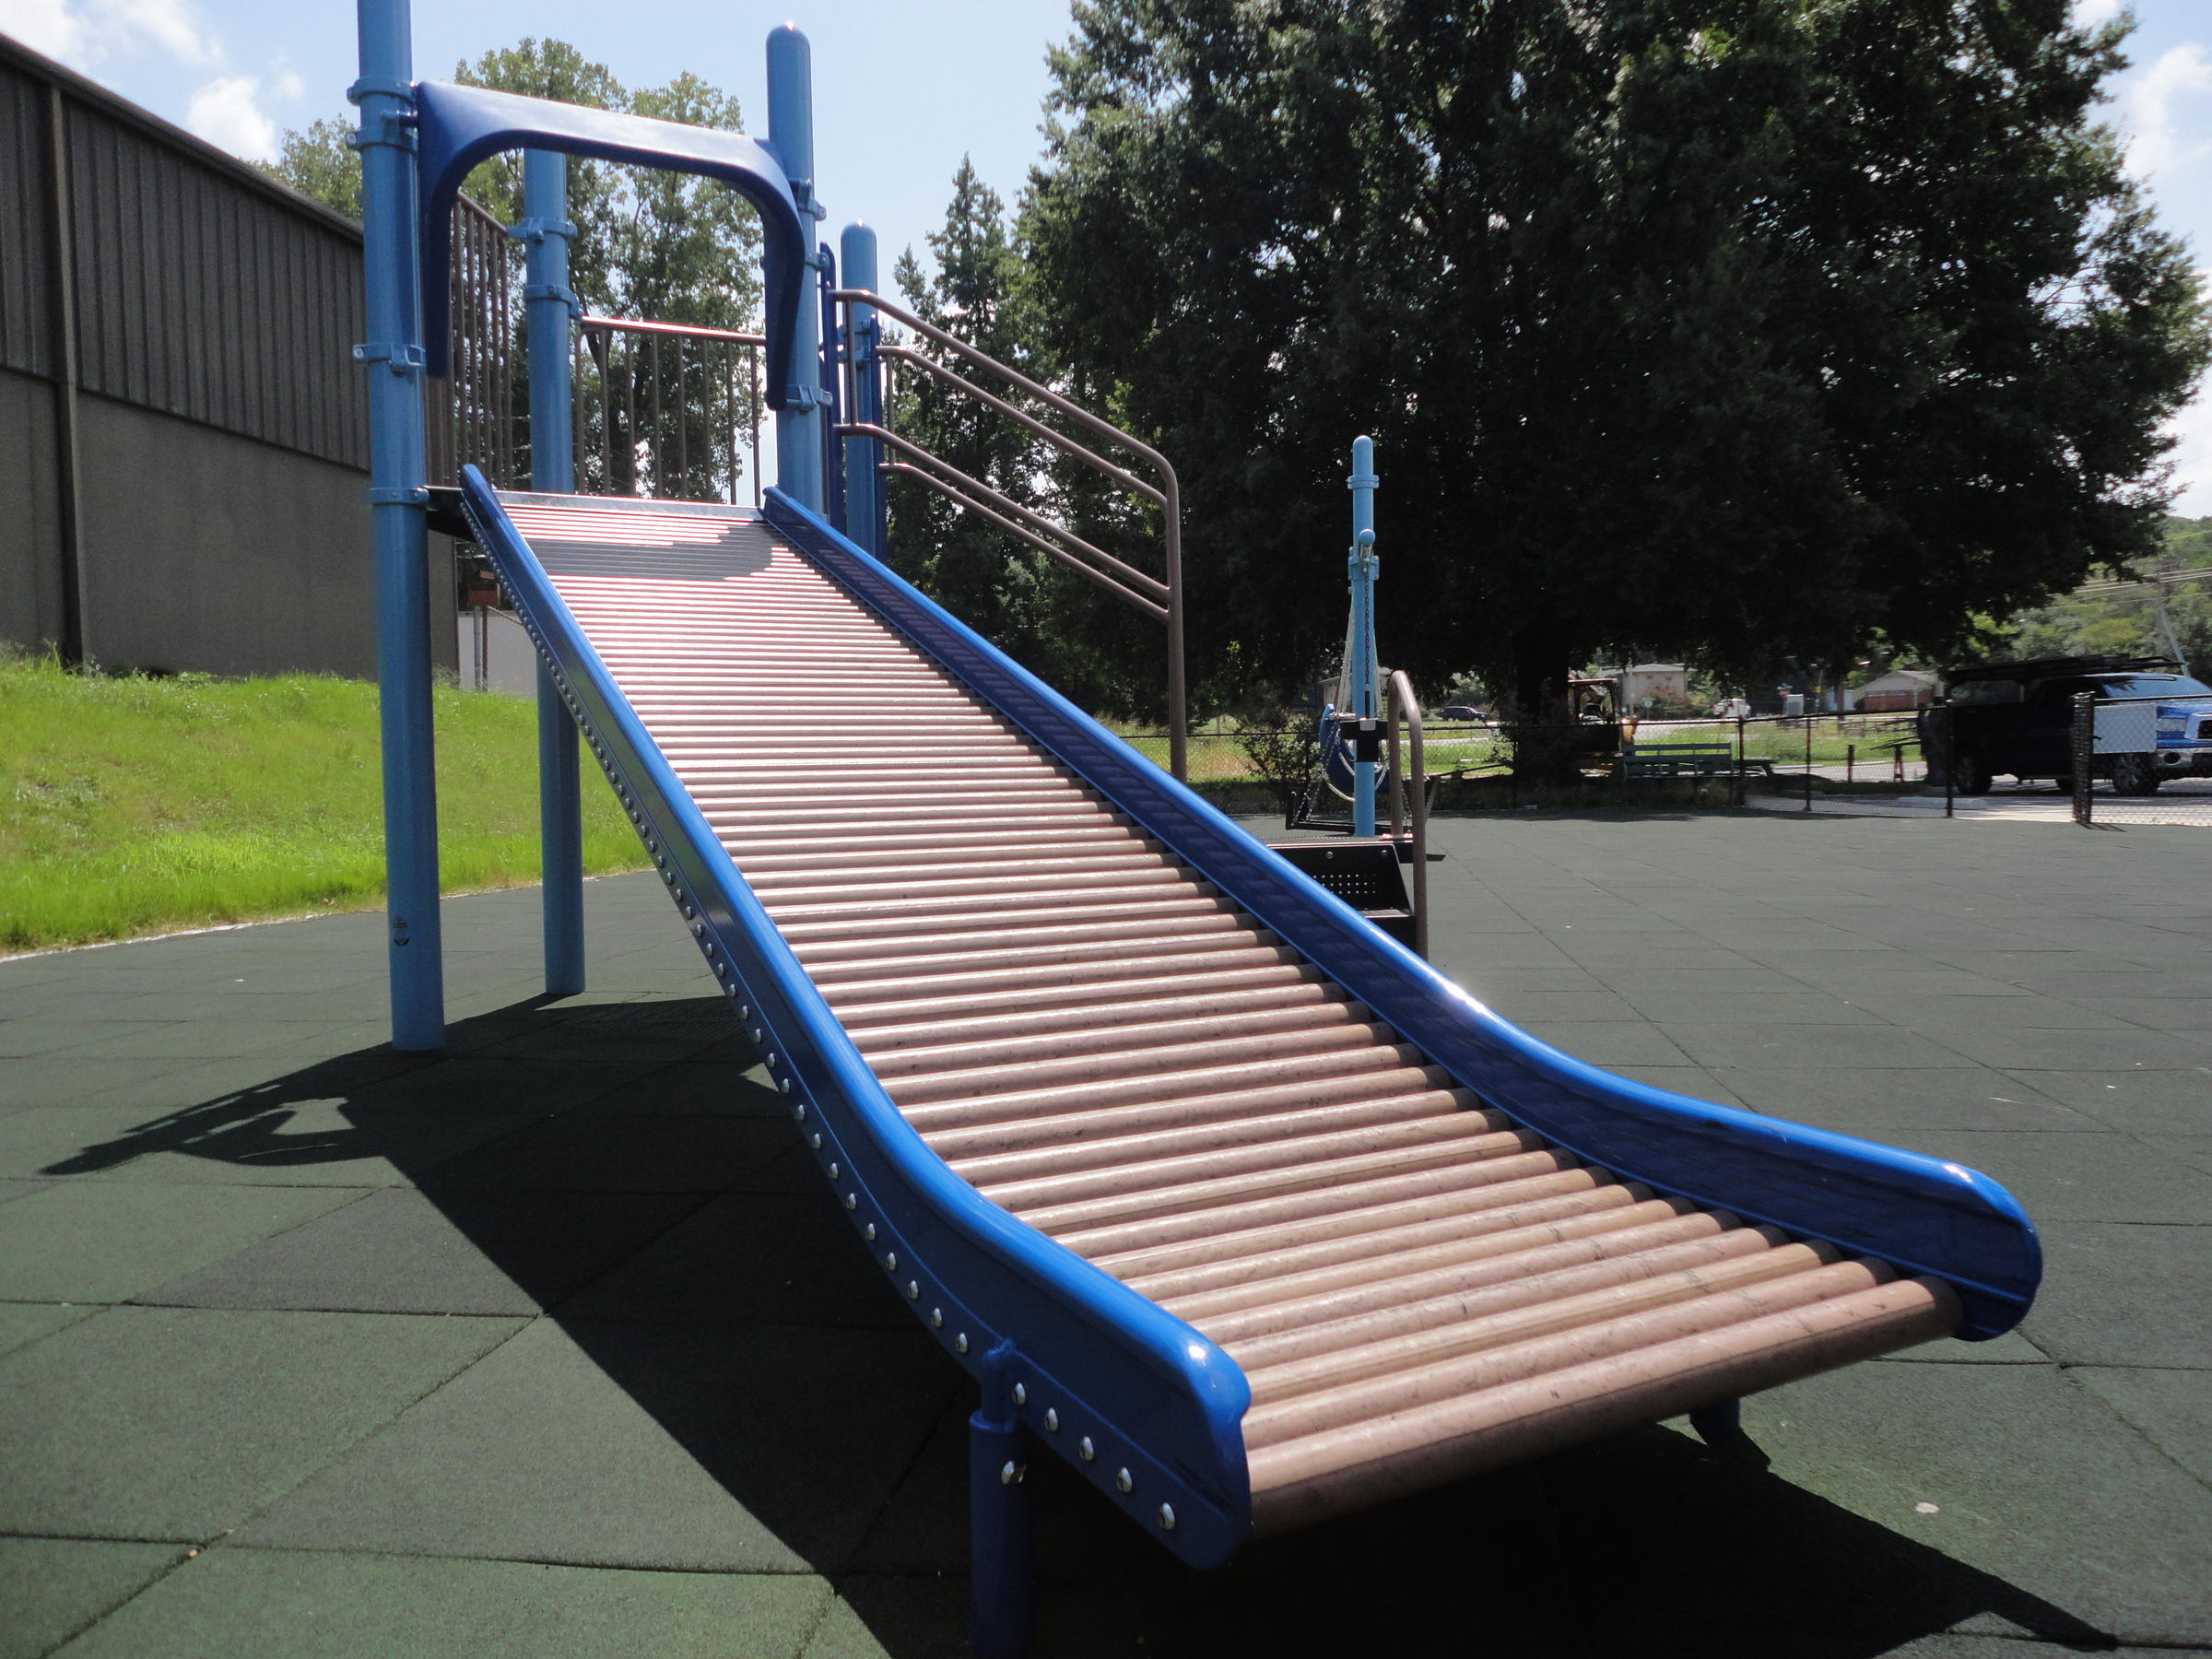 Top 10 Modern Backyard Trends 2015 further Superkilen additionally Fairlington  munity Center Park additionally Steel Outdoor Fitness Equipment  bo Playground 1885295656 besides Killjoy Council Tries BAN Youngsters Climbing Trees Play Annoying Balls Games Public Parks Fines 500 Caught. on public park play equipment